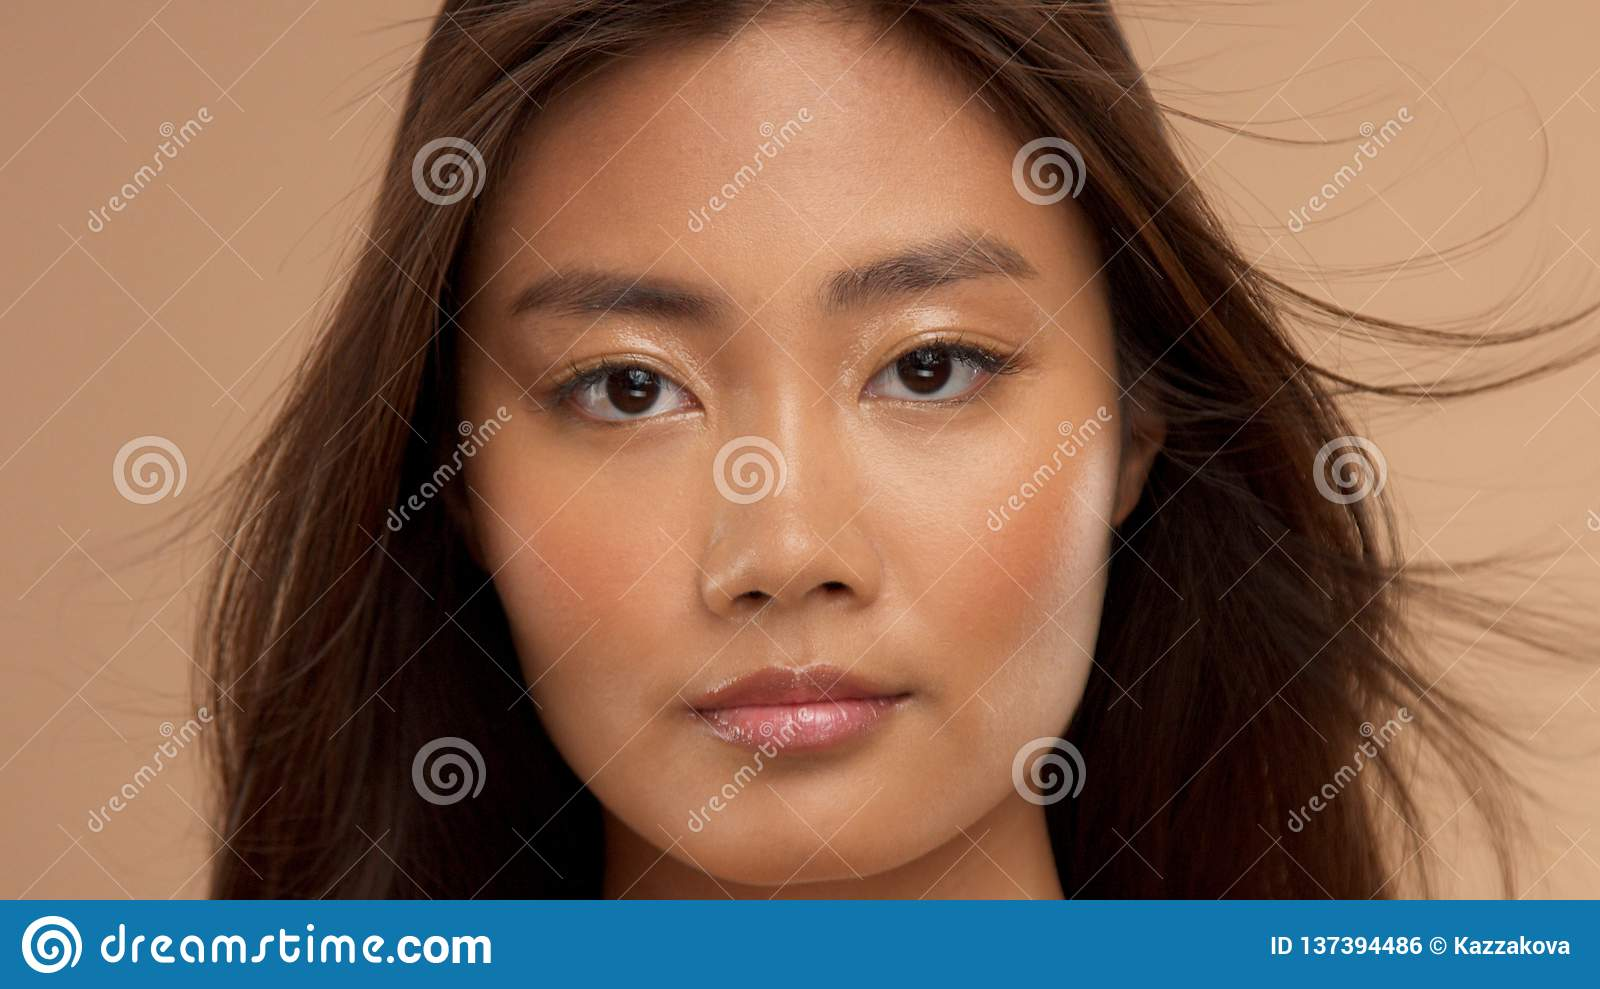 Thai Asian Model With Natural Makeup On Beige Background Stock Photo Image Of Skin Strobing 137394486